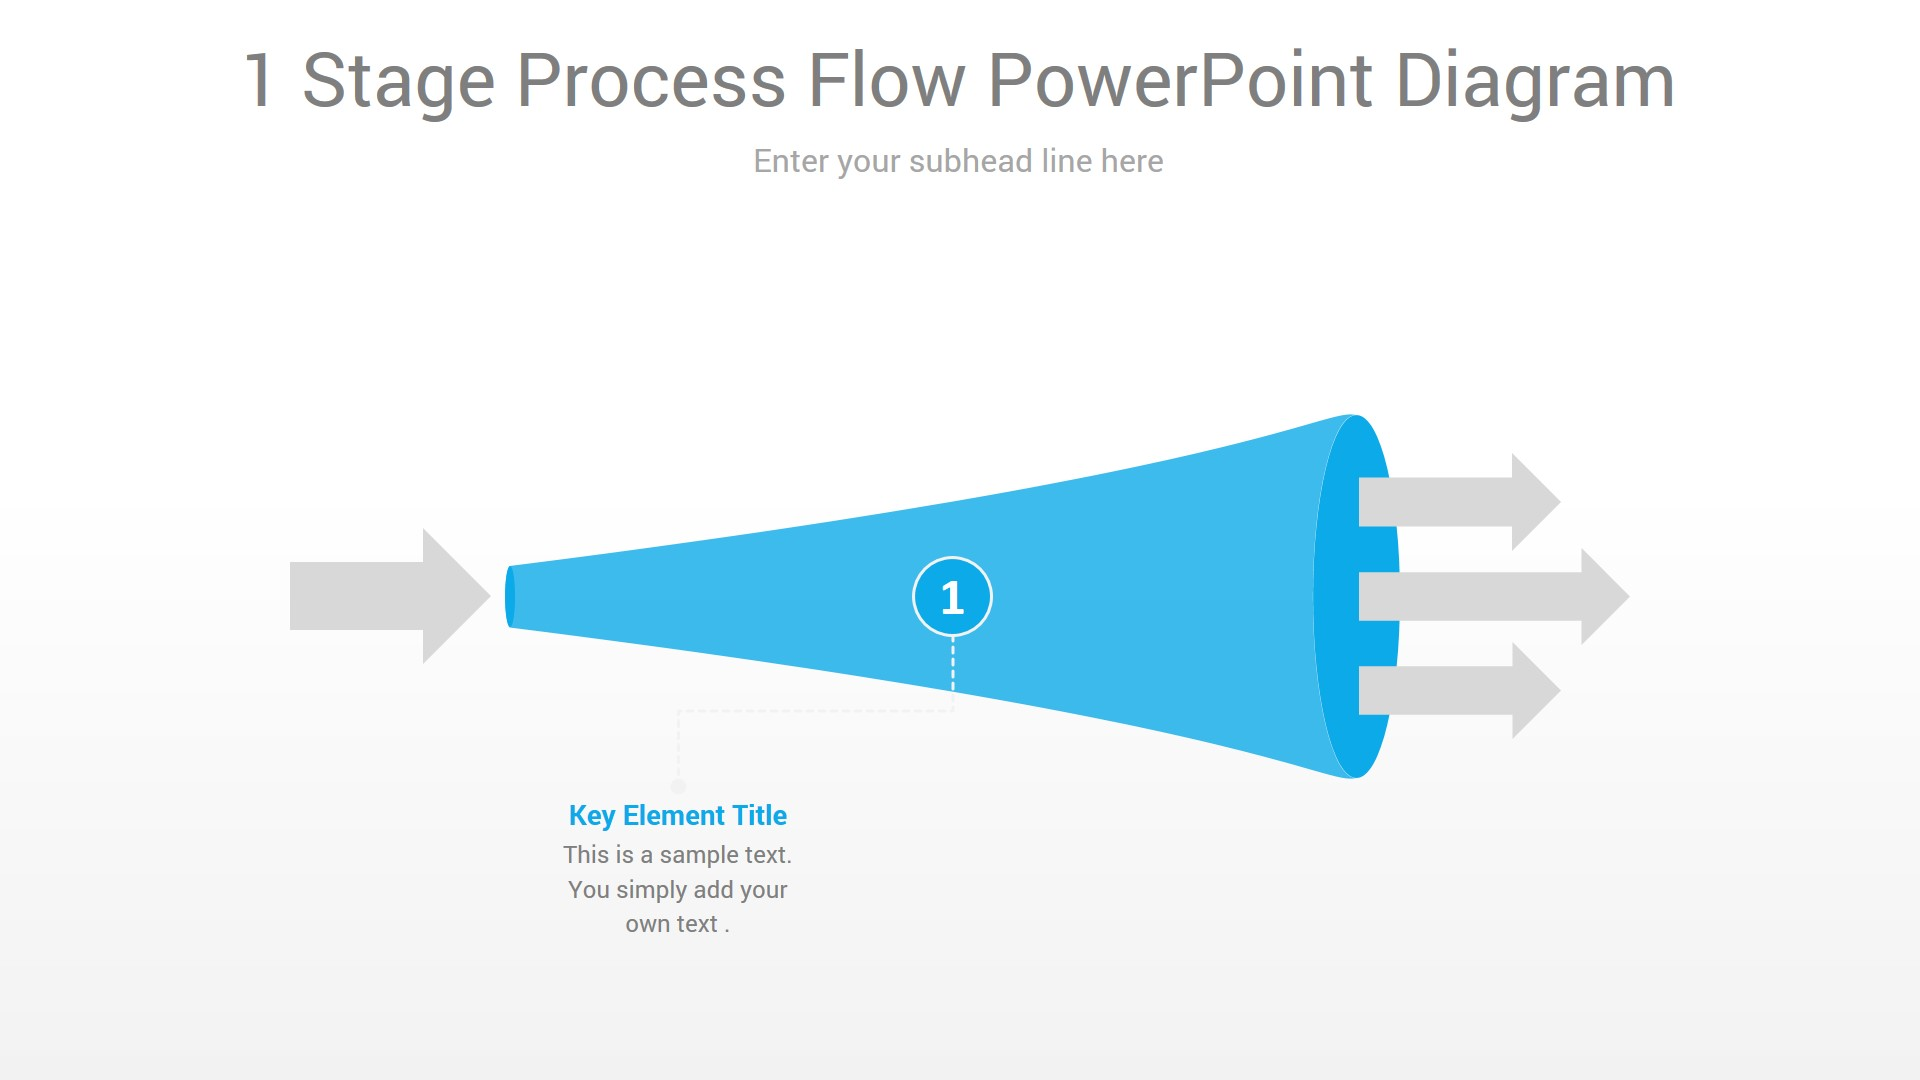 1 Stage Process Flow PowerPoint Diagram